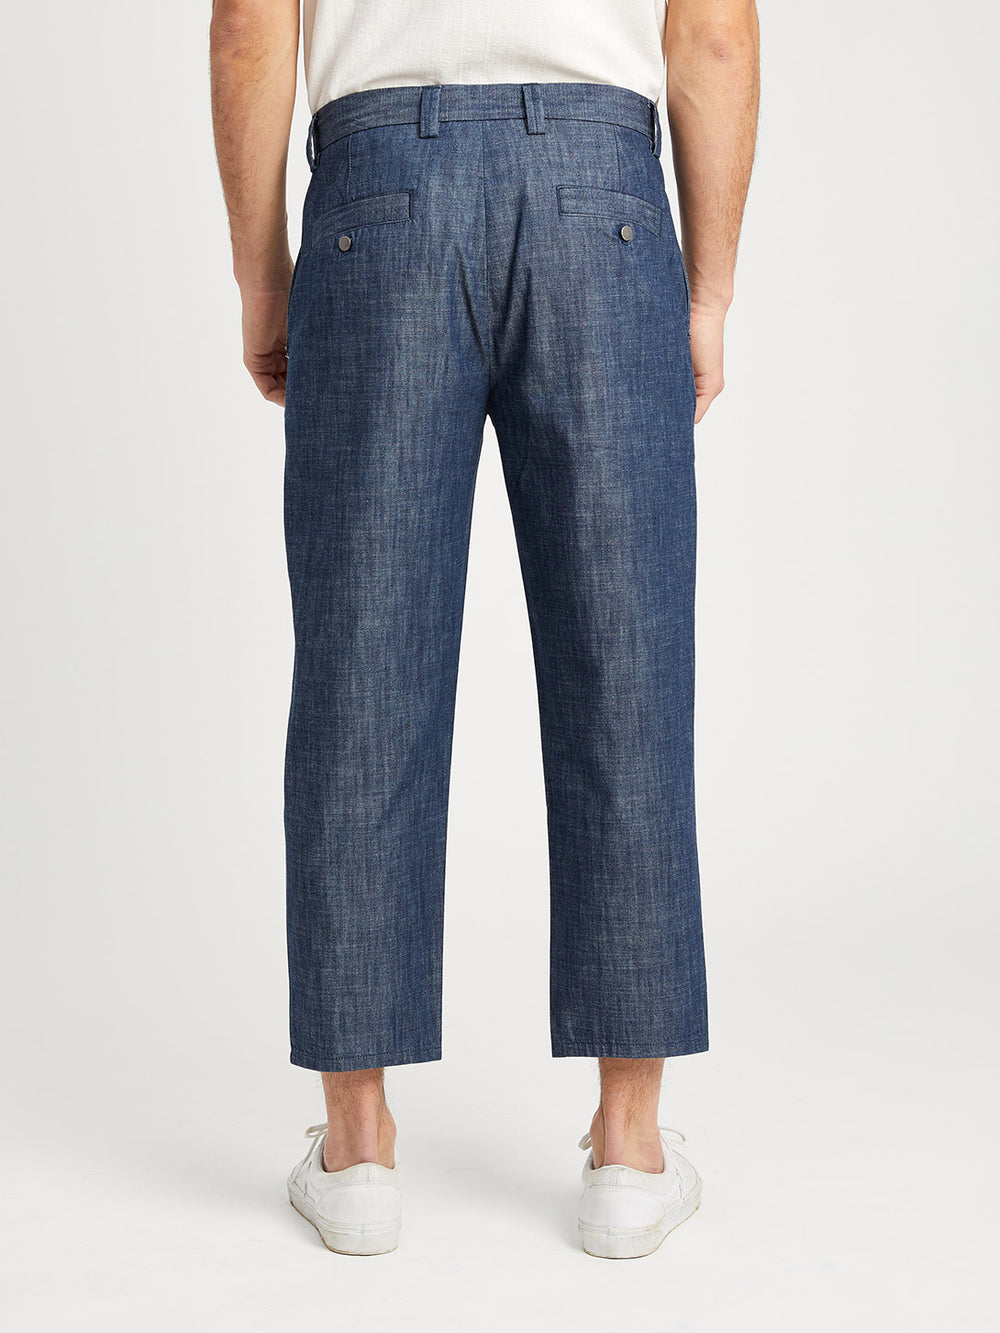 INDIGO DENIM ASTOR TROUSER ONS Clothing Indigo Capsule